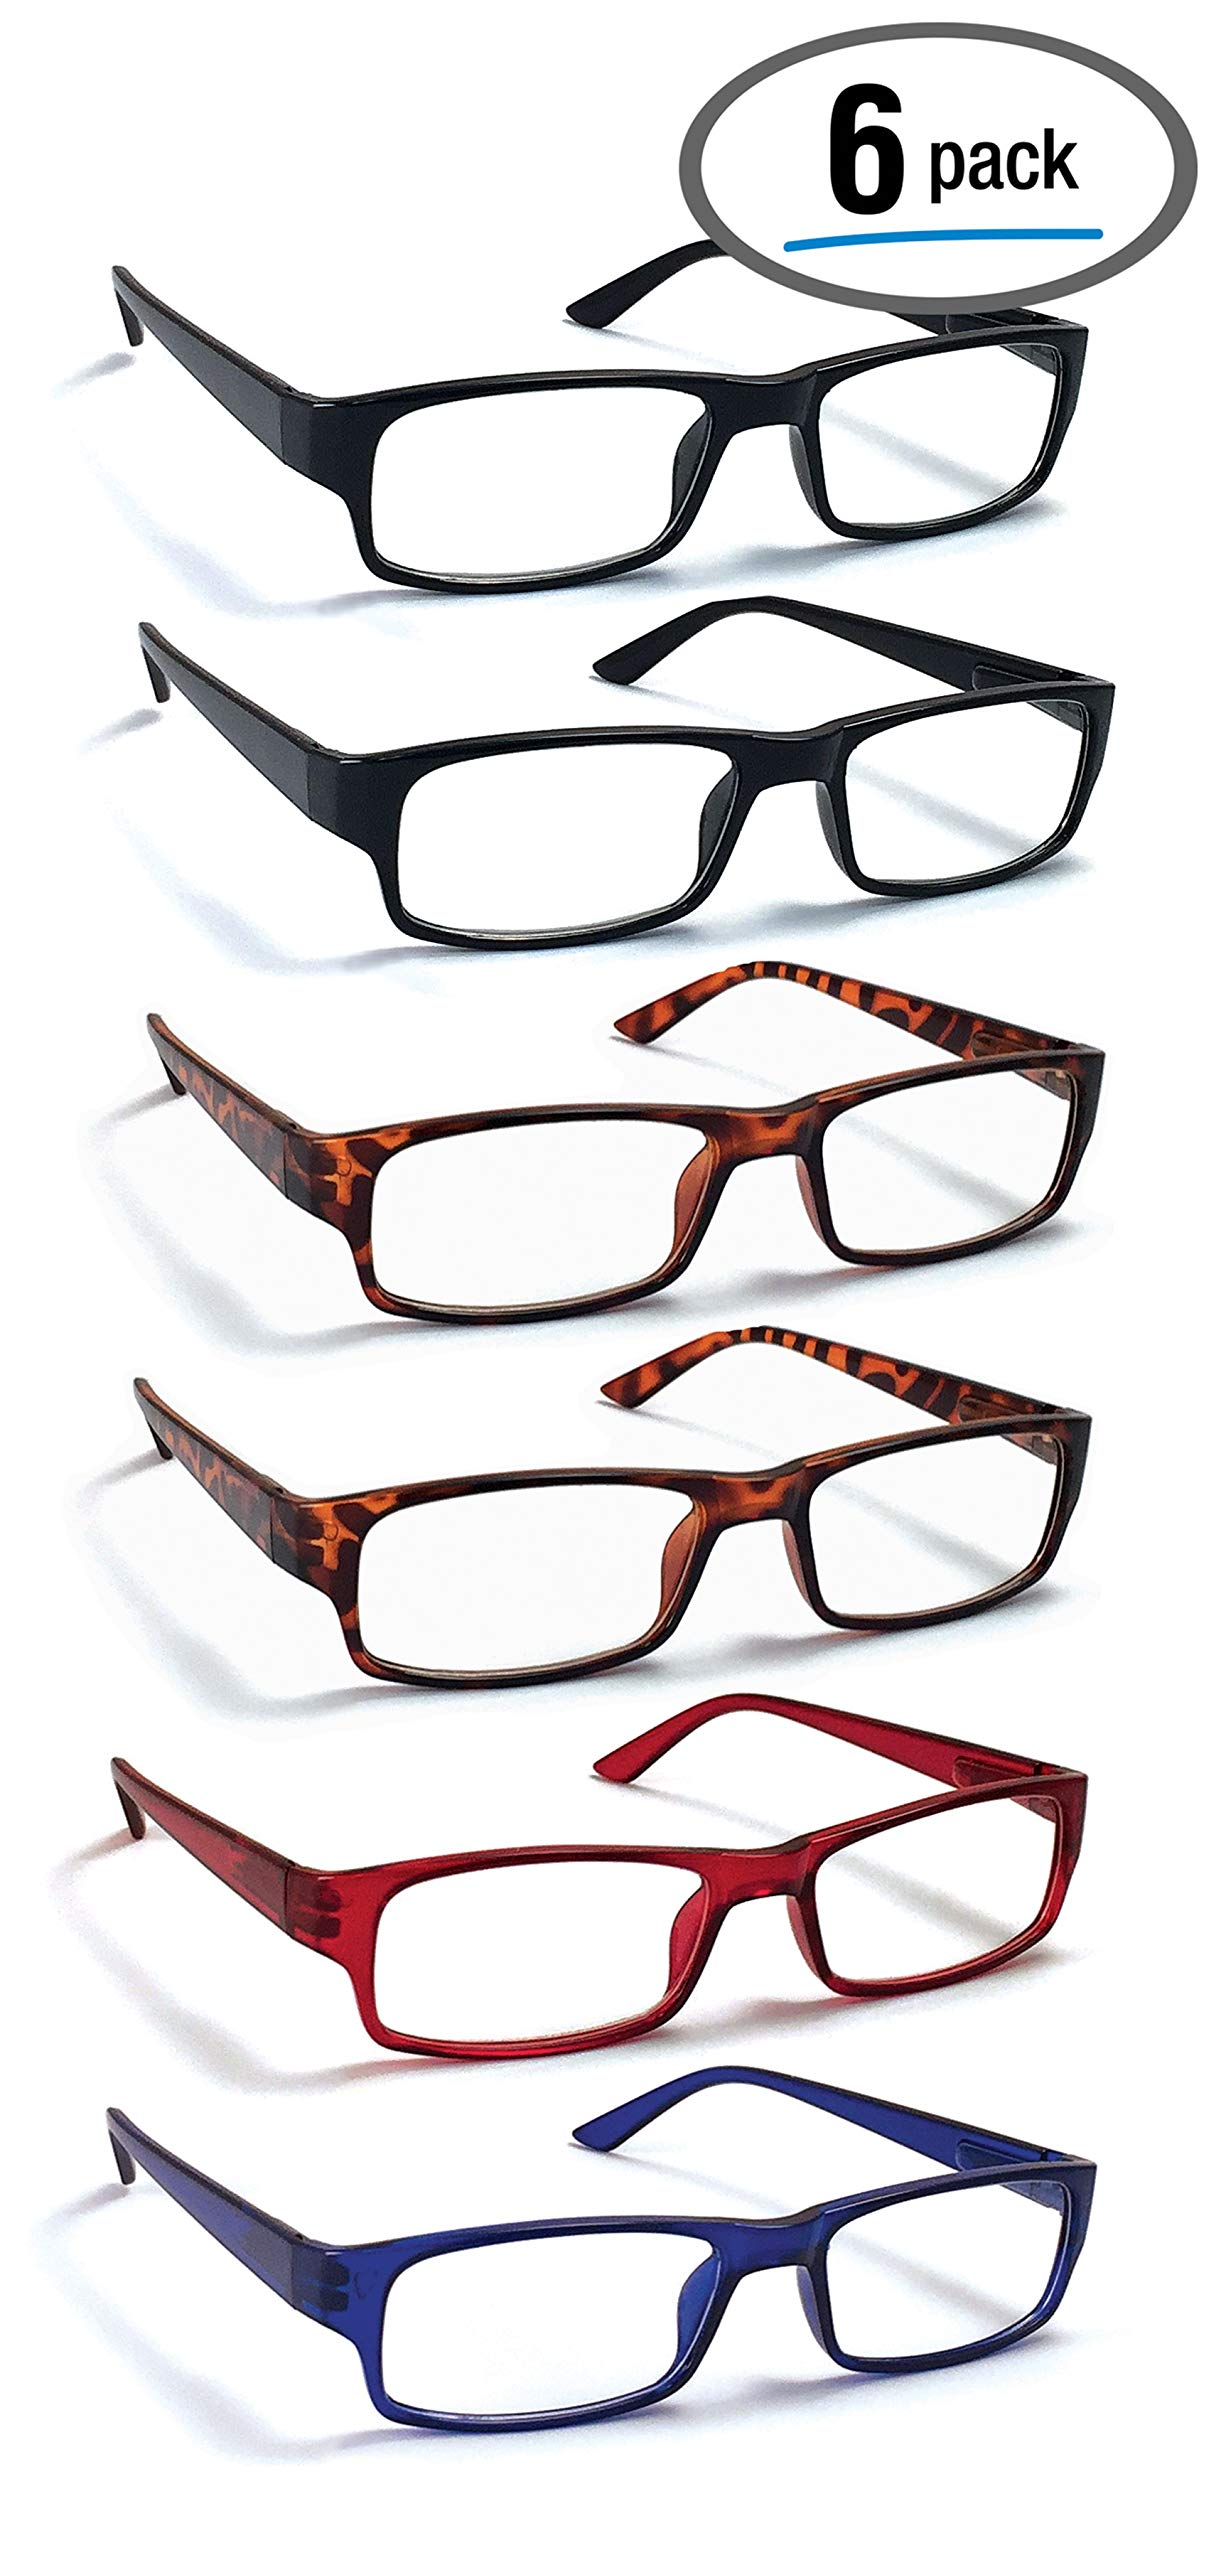 6 Pack Reading Glasses by BOOST EYEWEAR, Traditional Frames in Black, Tortoise Shell, Blue and Red, for Men and Women, with Comfort Spring Loaded Hinges, Assorted Colors, 6 Pairs (+1.00) by Boost Eyewear